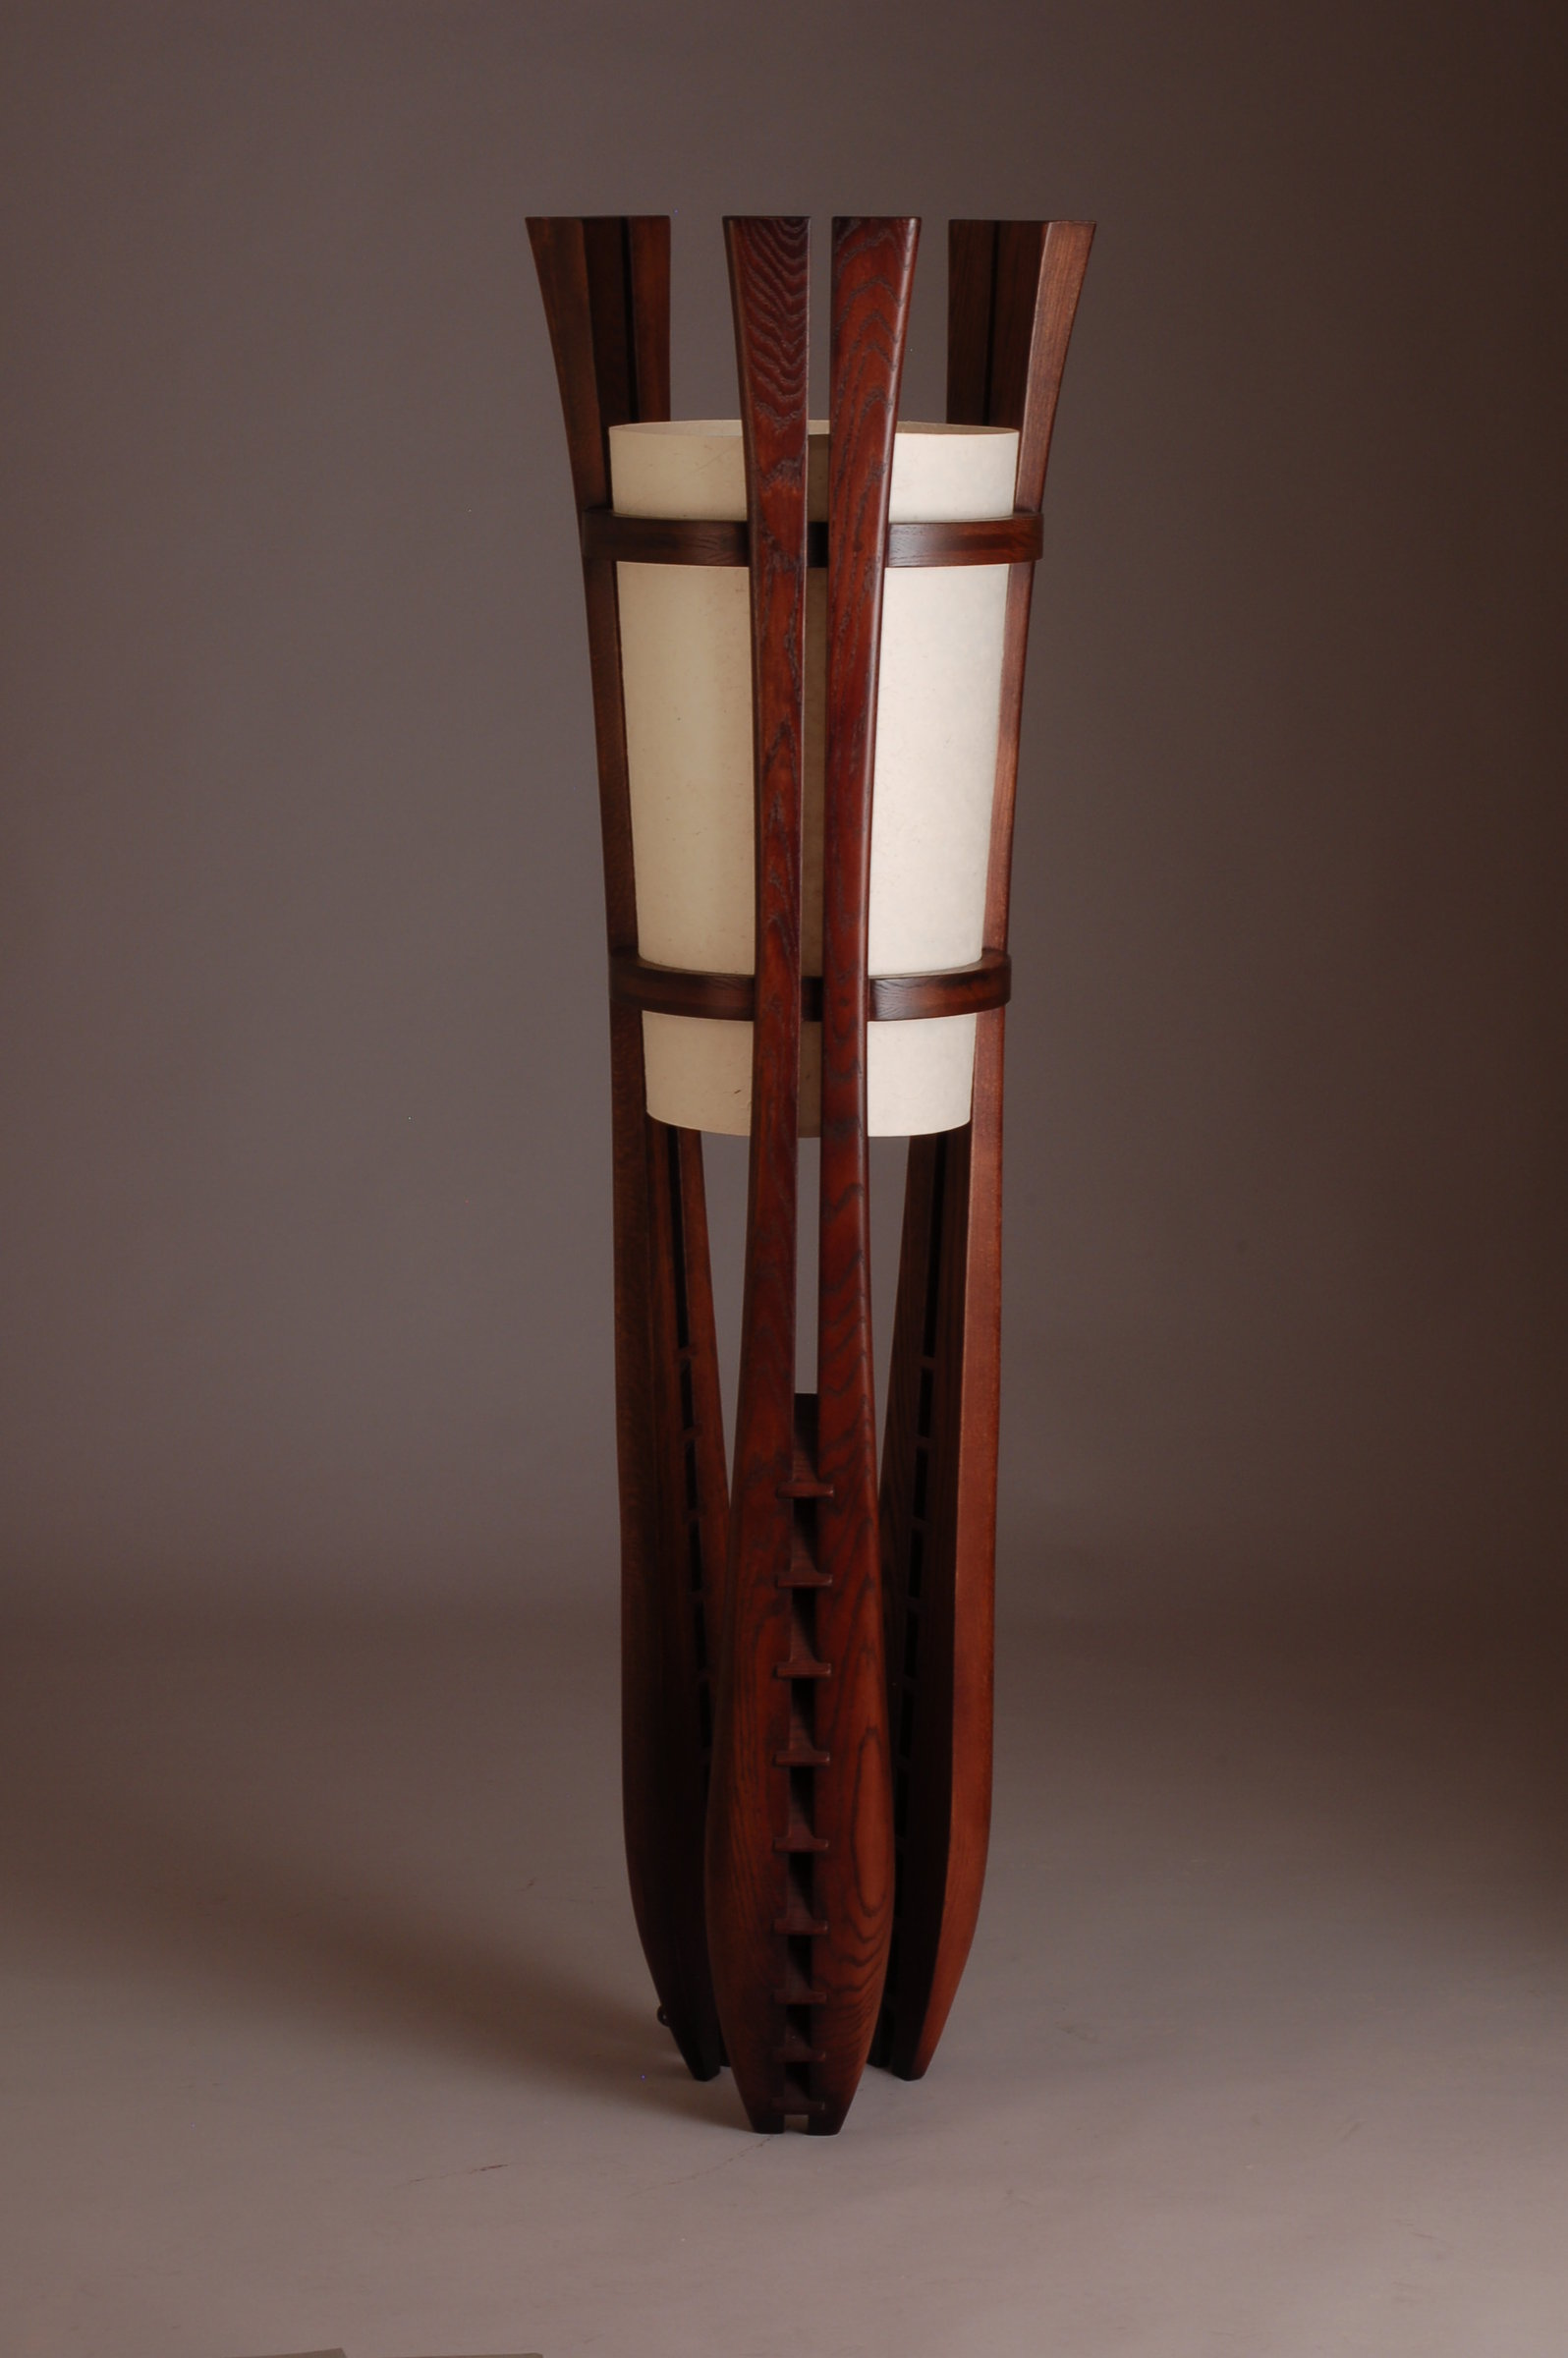 Louver lamp by kyle dallman wood floor lamp artful home for Used wood floor lamp